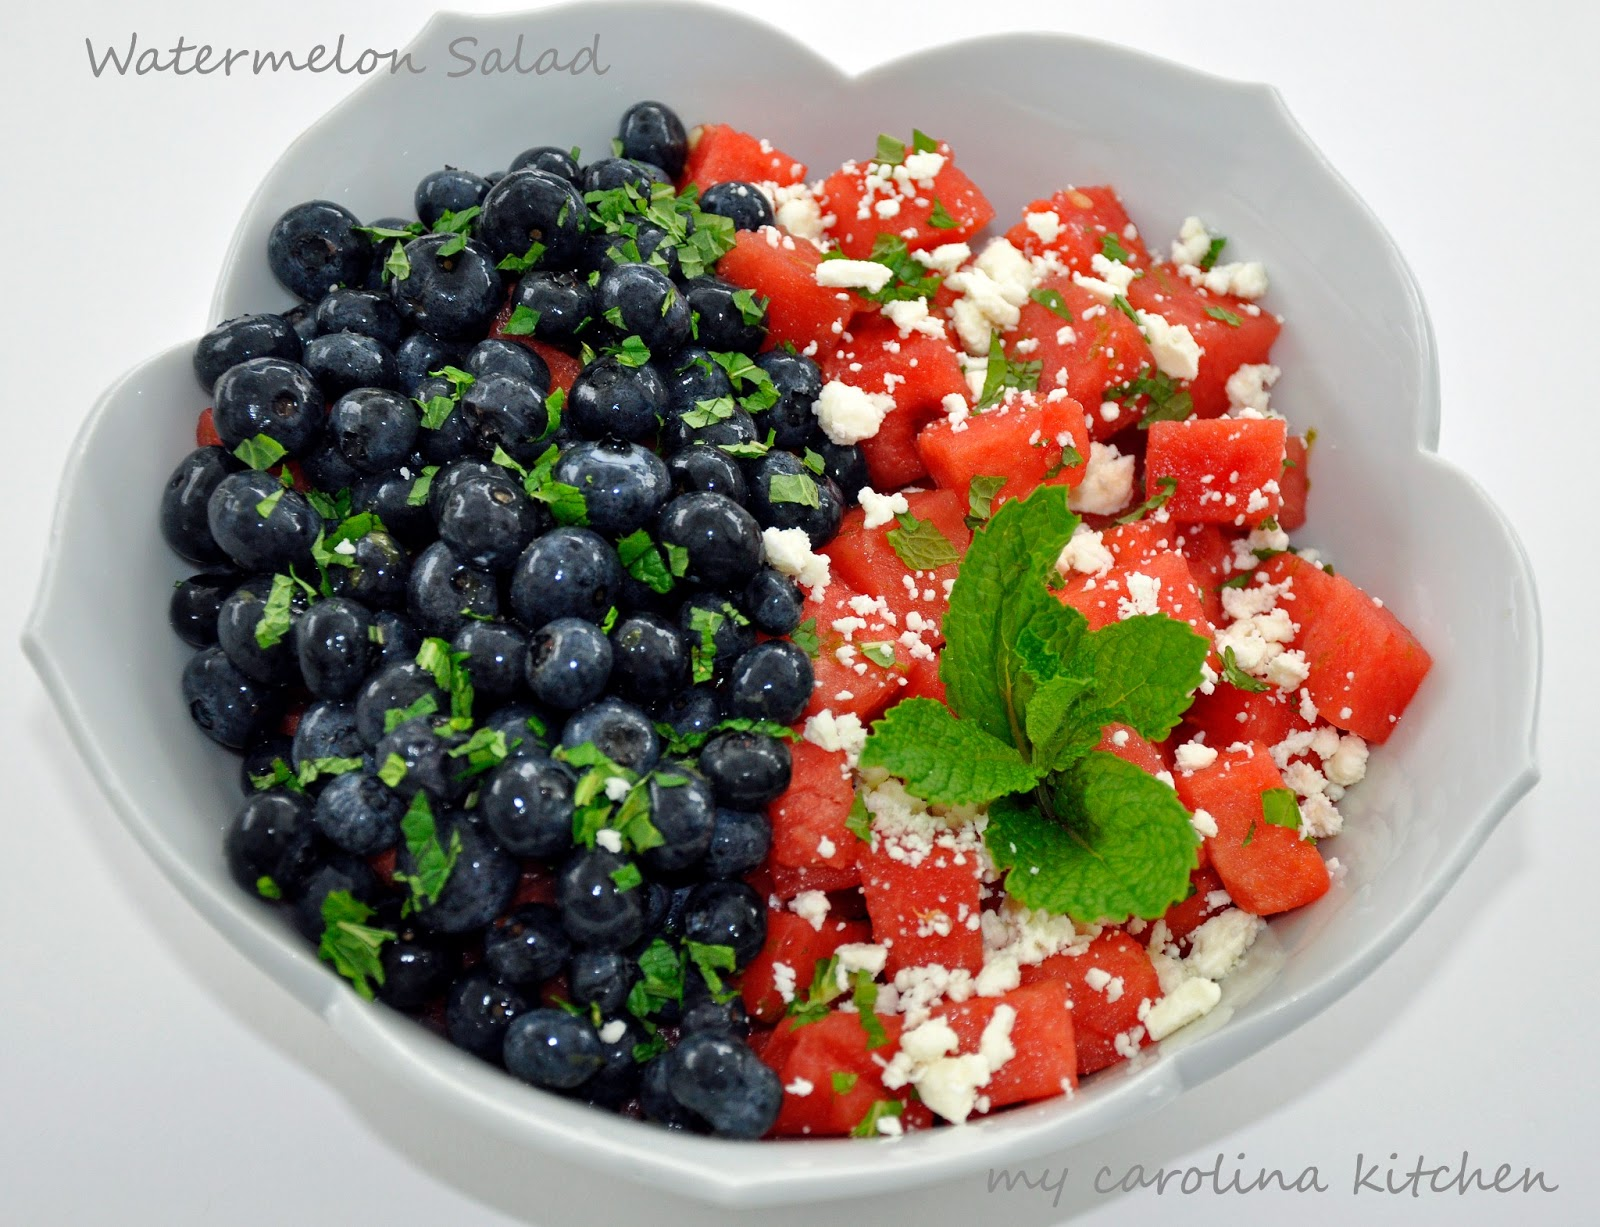 My Carolina Kitchen: Red, White, and Blue Watermelon Salad